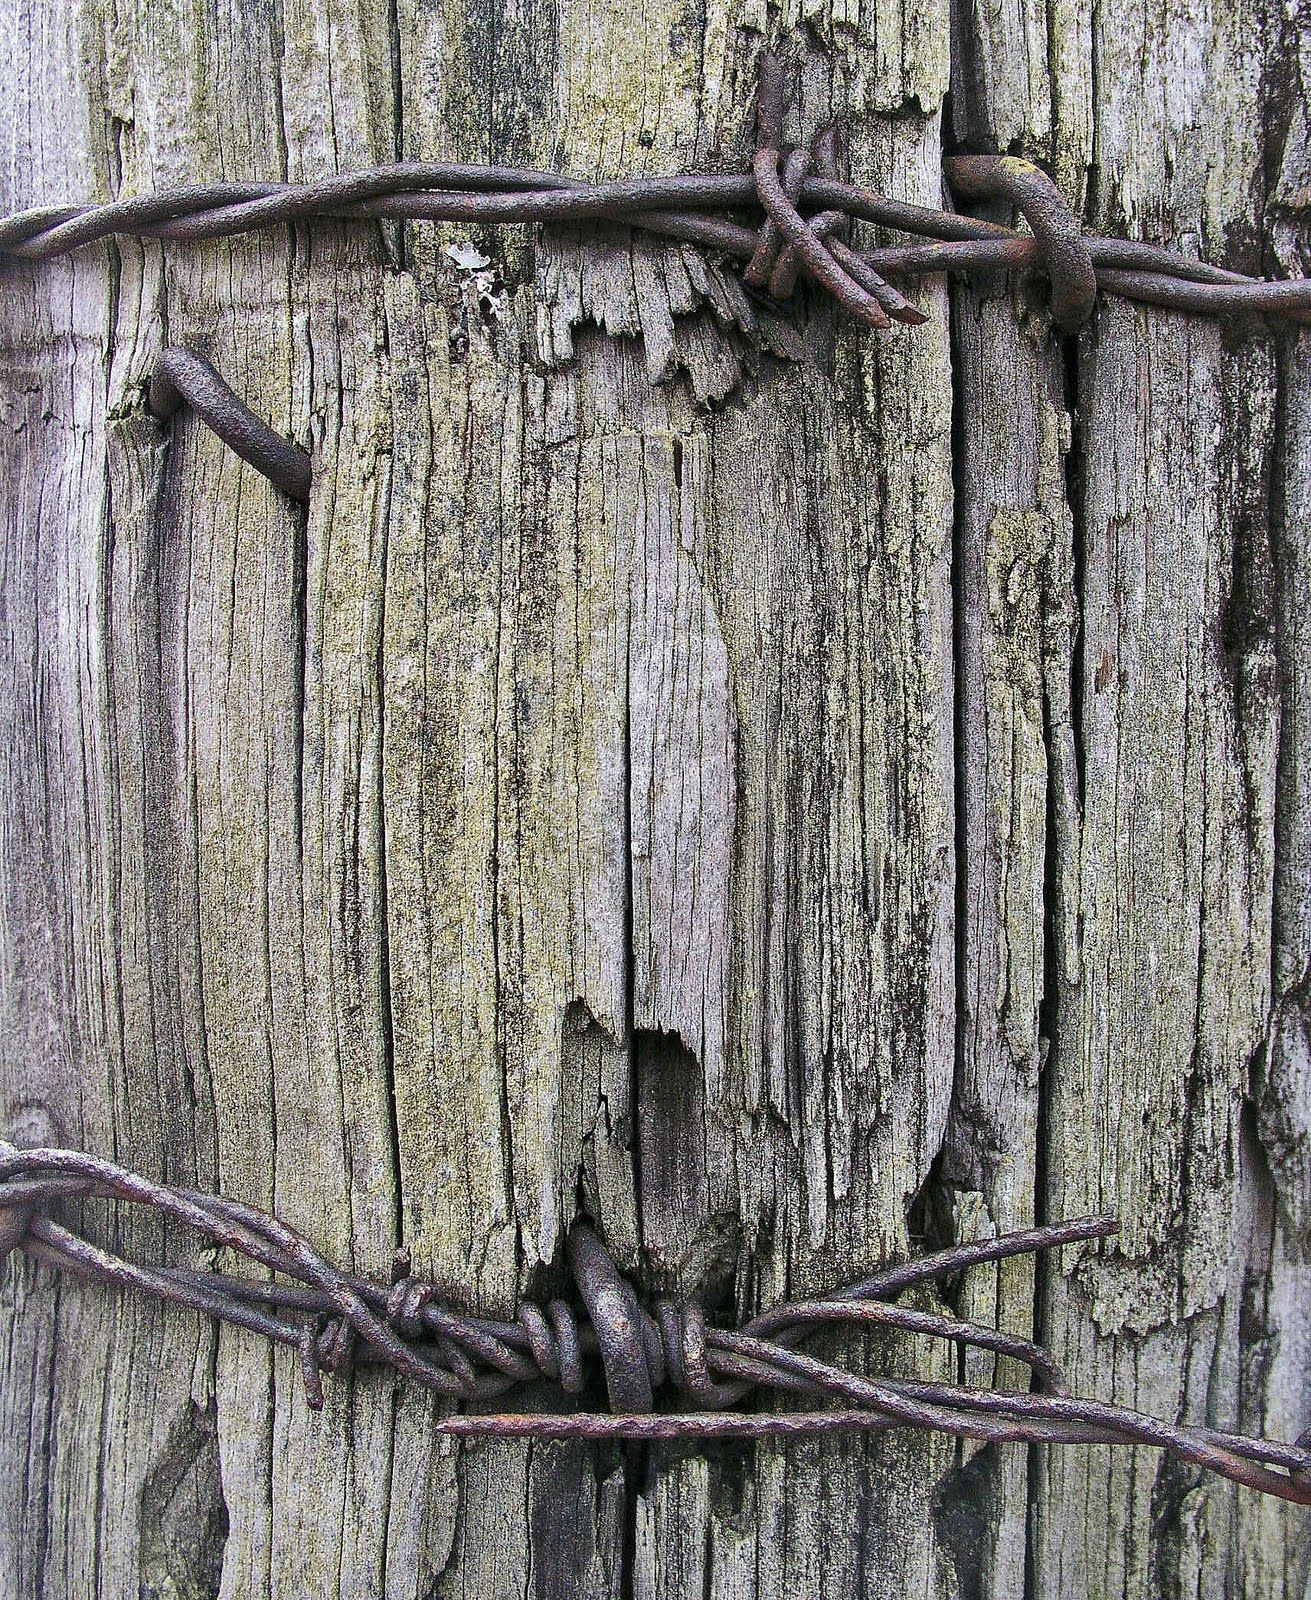 barbed wire stapled onto post ideas